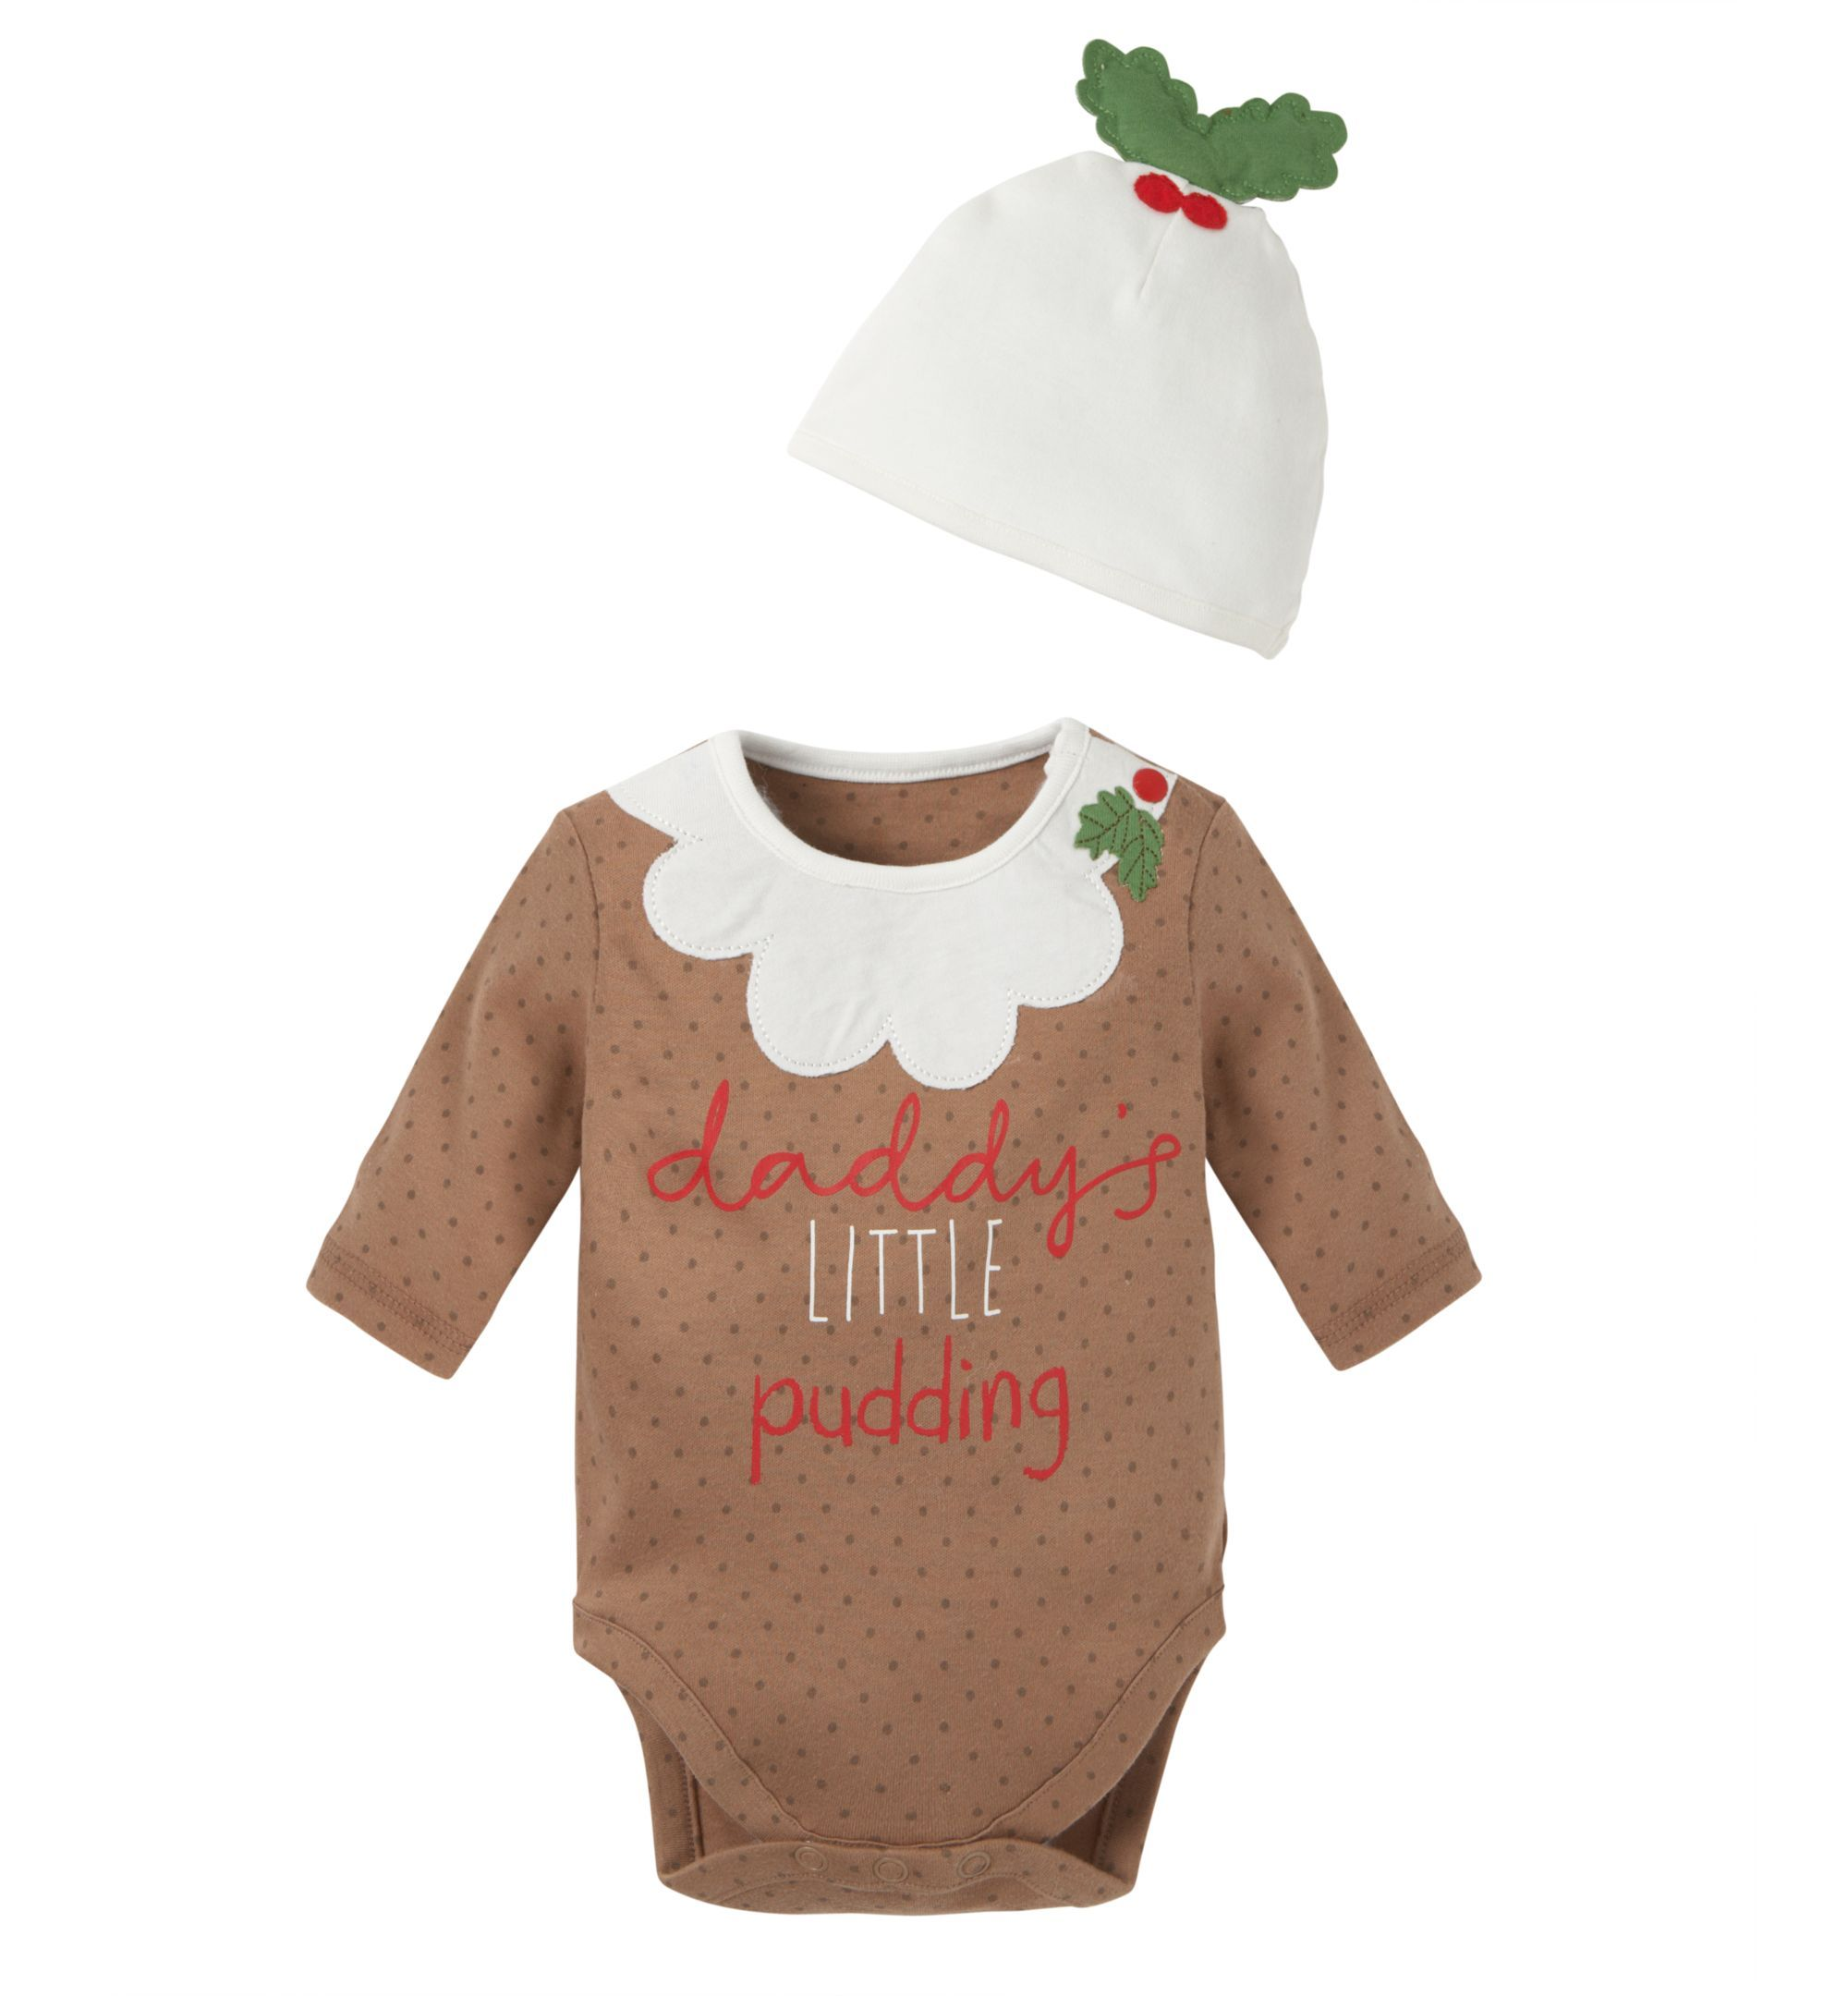 816df0281 Mothercare Christmas Pudding Set